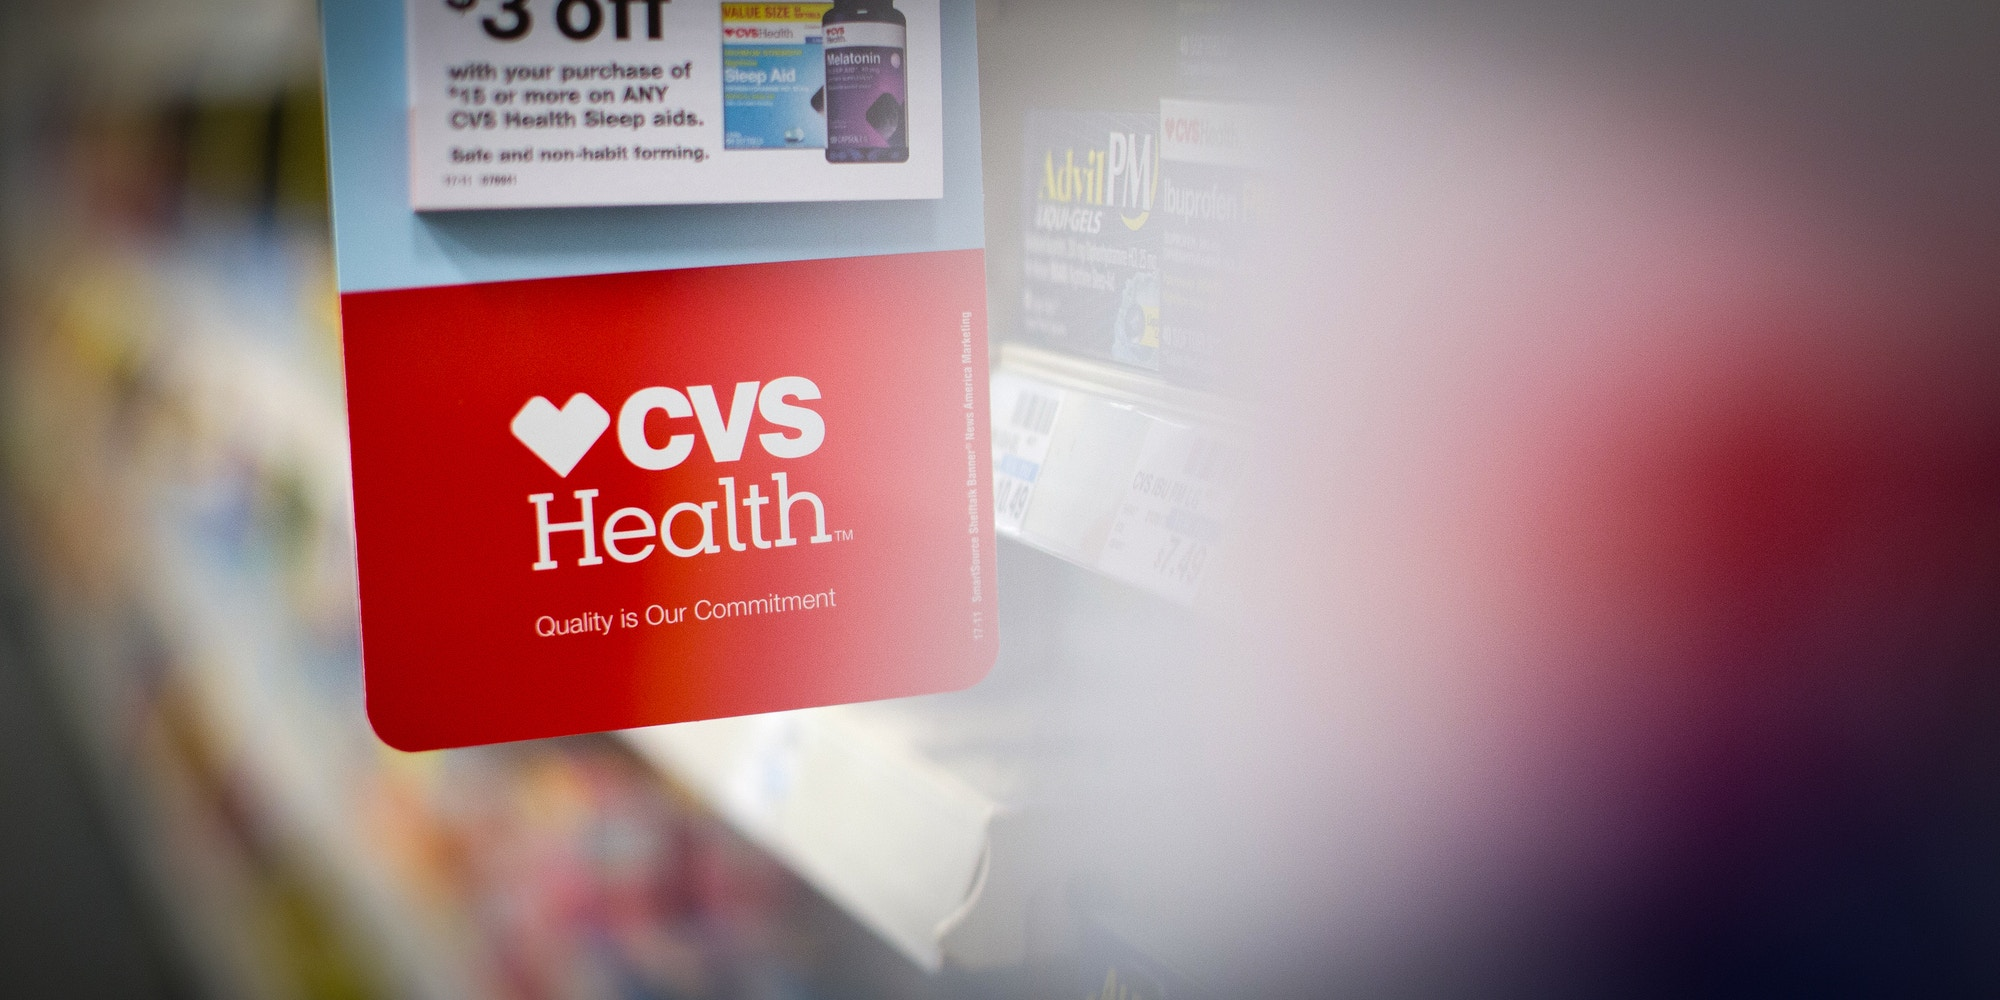 Signage is displayed in an aisle of a CVS Health Corp. store in downtown Los Angeles, California, U.S., on Friday, Oct. 27, 2017. The prospect of Amazon.com Inc. entering the healthcare business is beginning to cause far-reaching reverberations for a range of companies, roiling the shares of drugstore chains, drug distributors and pharmacy-benefit managers, and potentially precipitating one of the biggest corporate merger deals this year. Photographer: Christopher Lee/Bloomberg via Getty Images